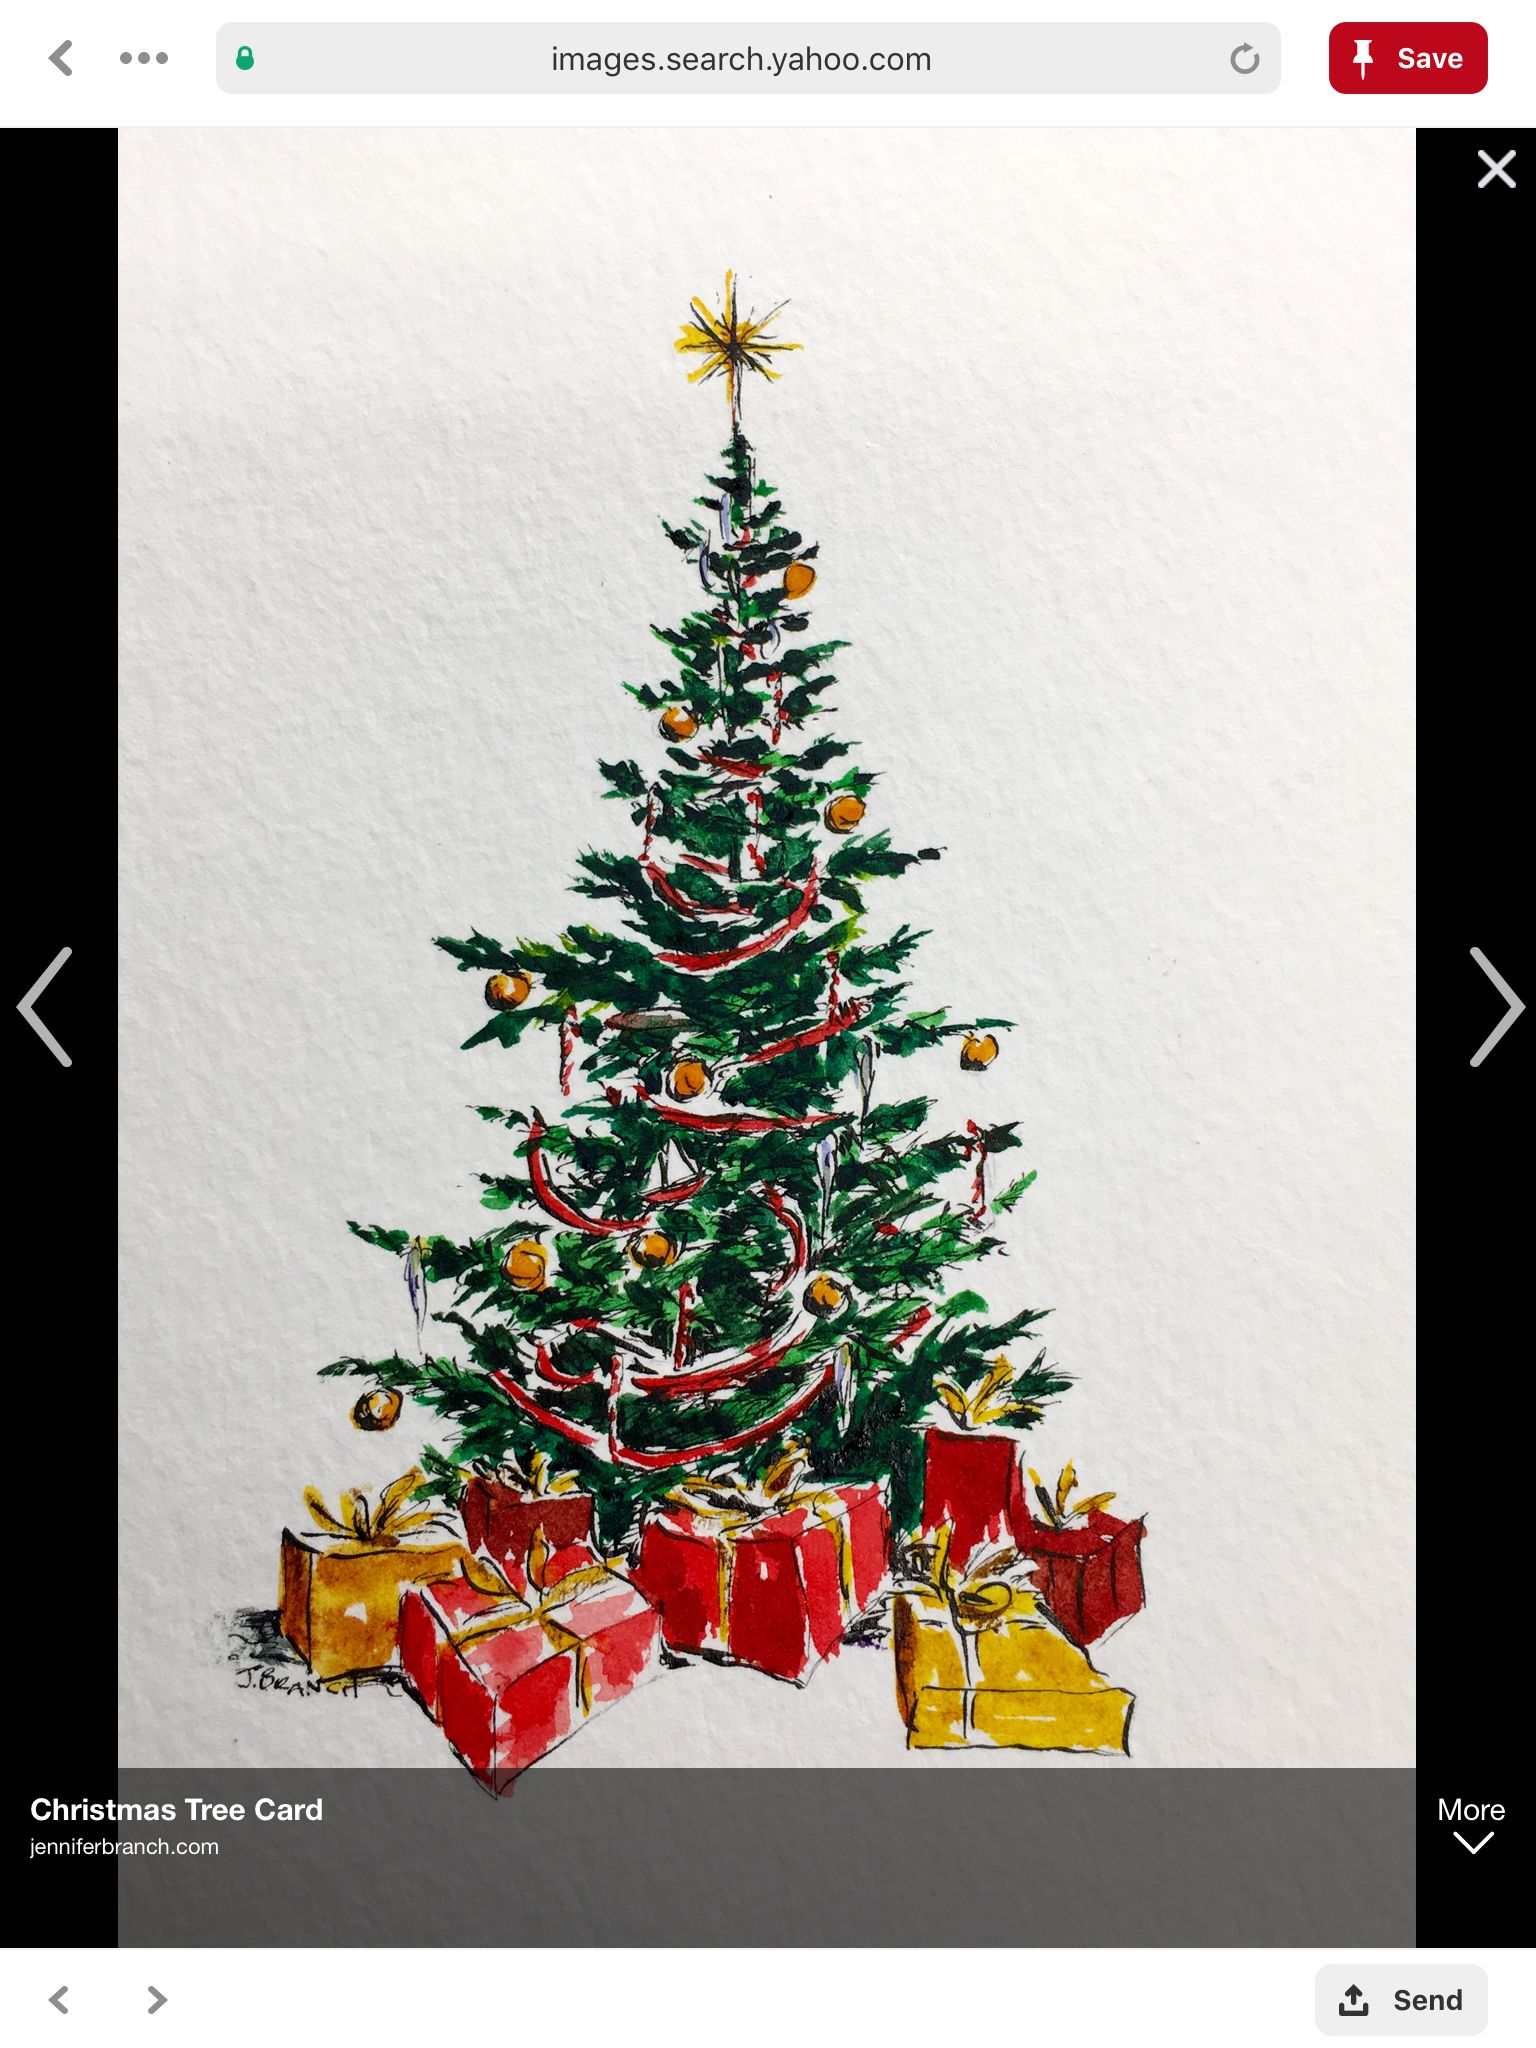 Singing Christmas Tree 2019.Pin By Shann On Watercolor Cards In 2019 Christmas Tree